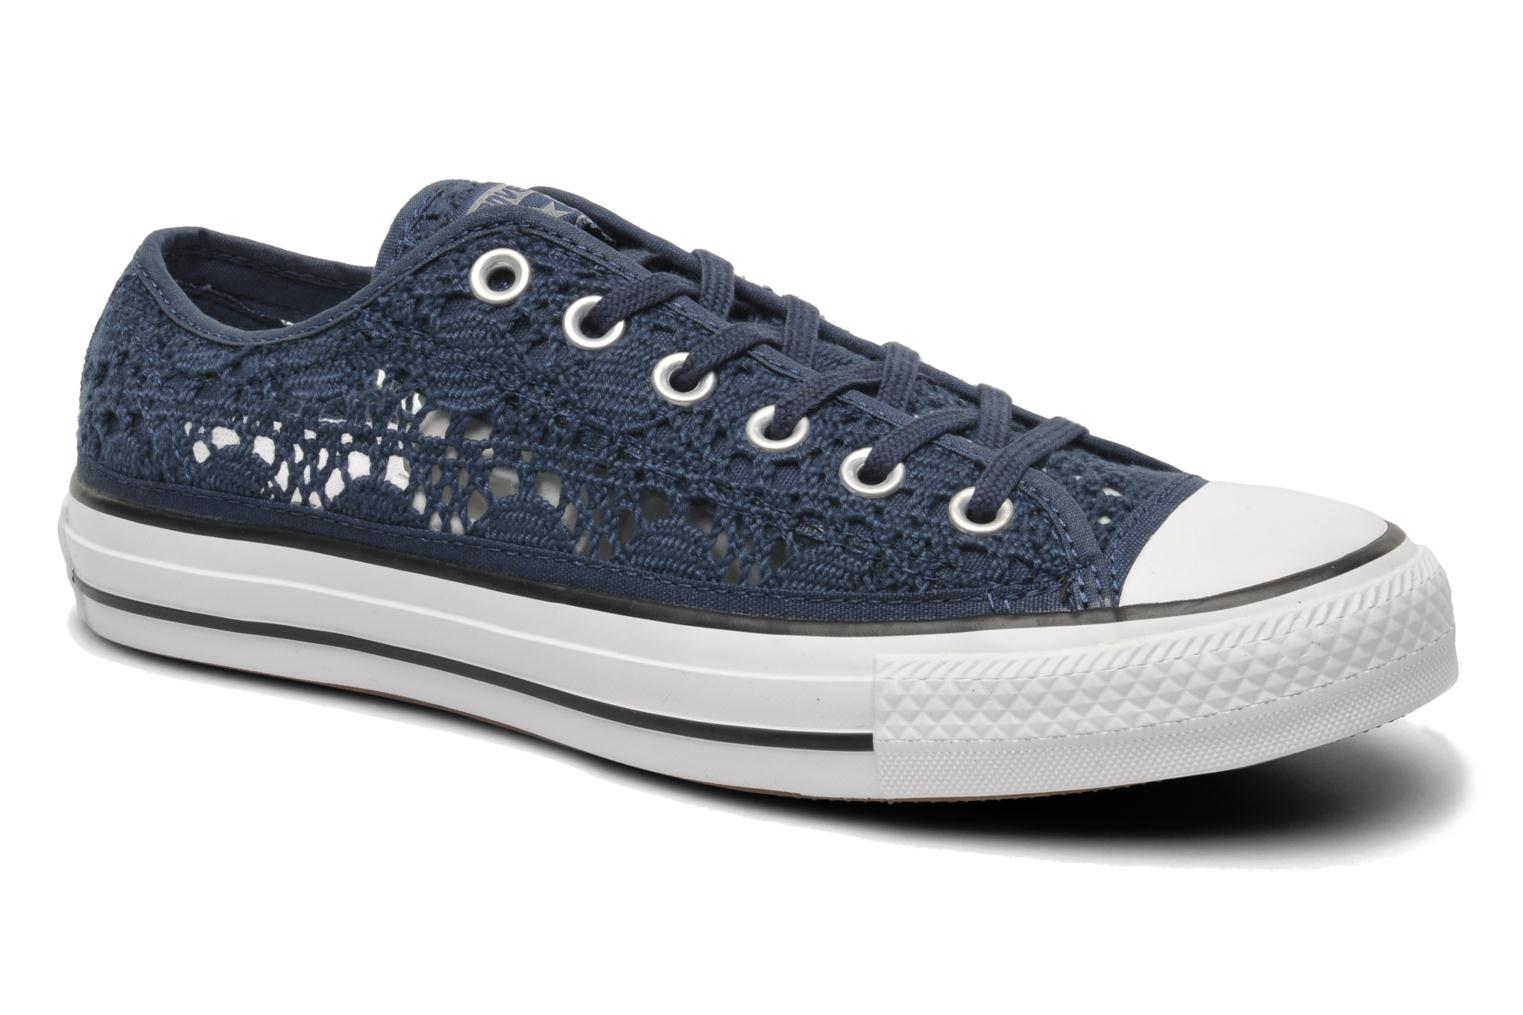 Converse Chuck Taylor All Star Crochet